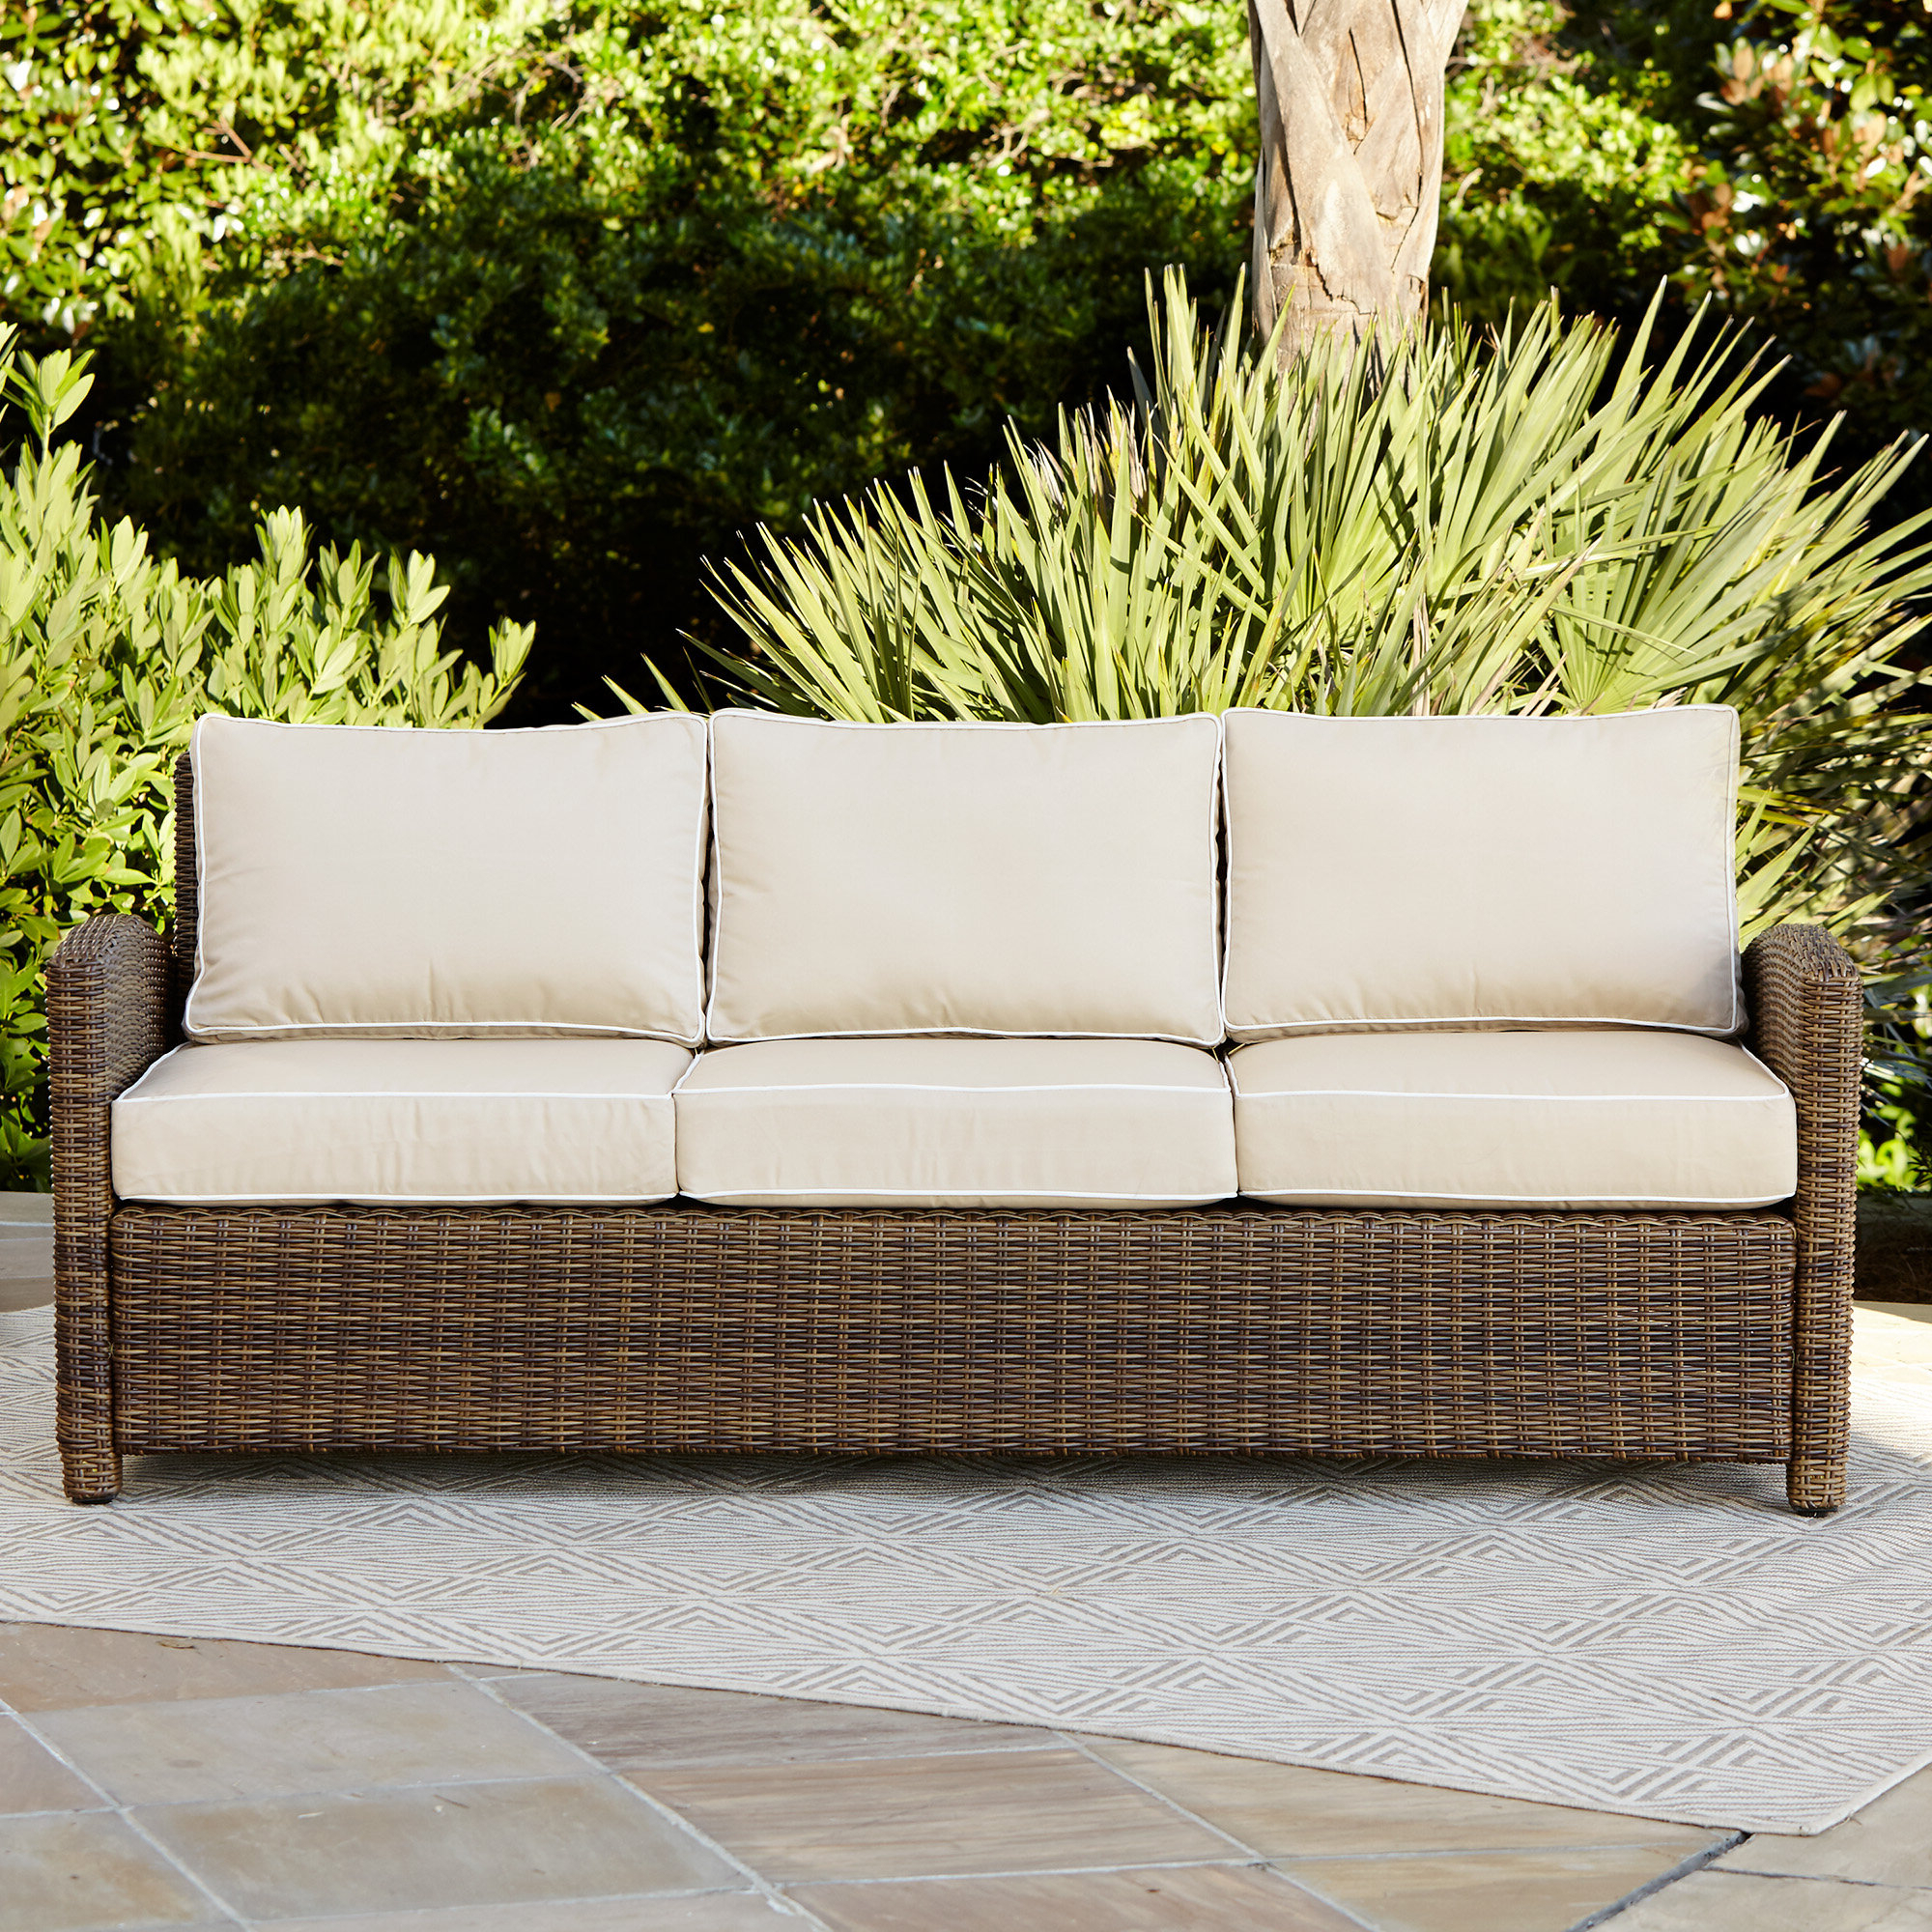 Most Recently Released Lawson Wicker Loveseats With Cushions Intended For Lawson Patio Sofa With Cushions (Gallery 8 of 25)